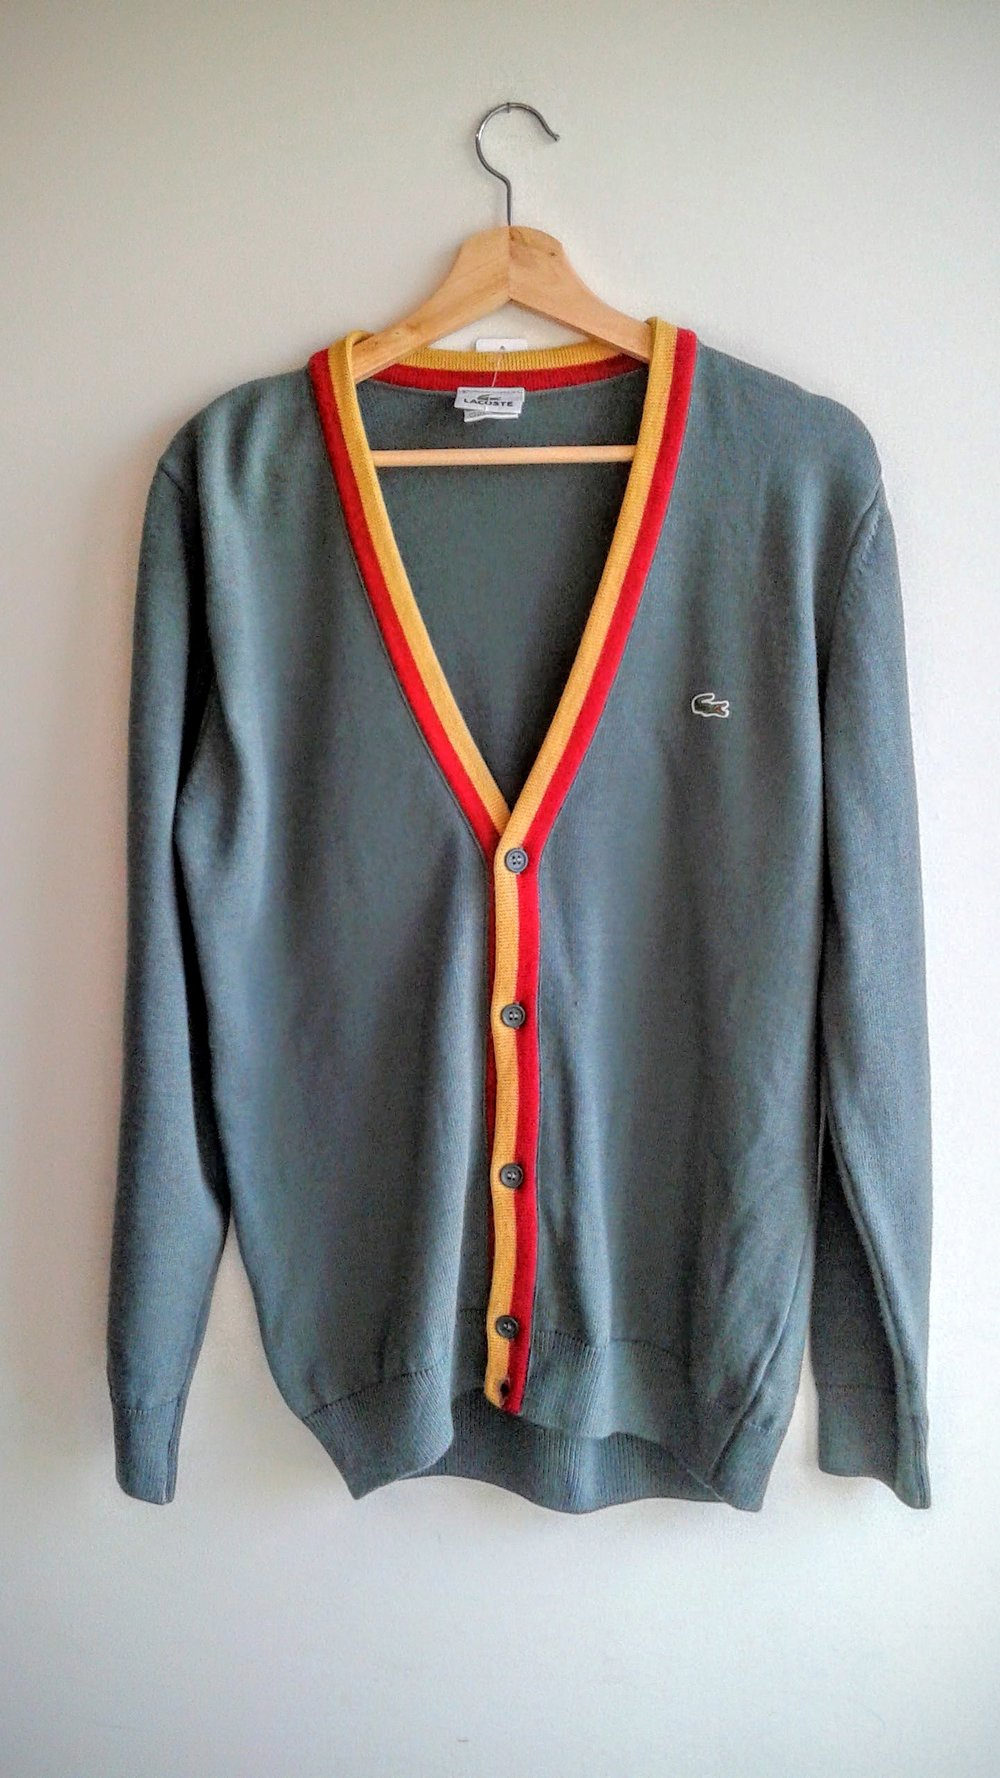 Lacoste men's sweater; Size L, $46